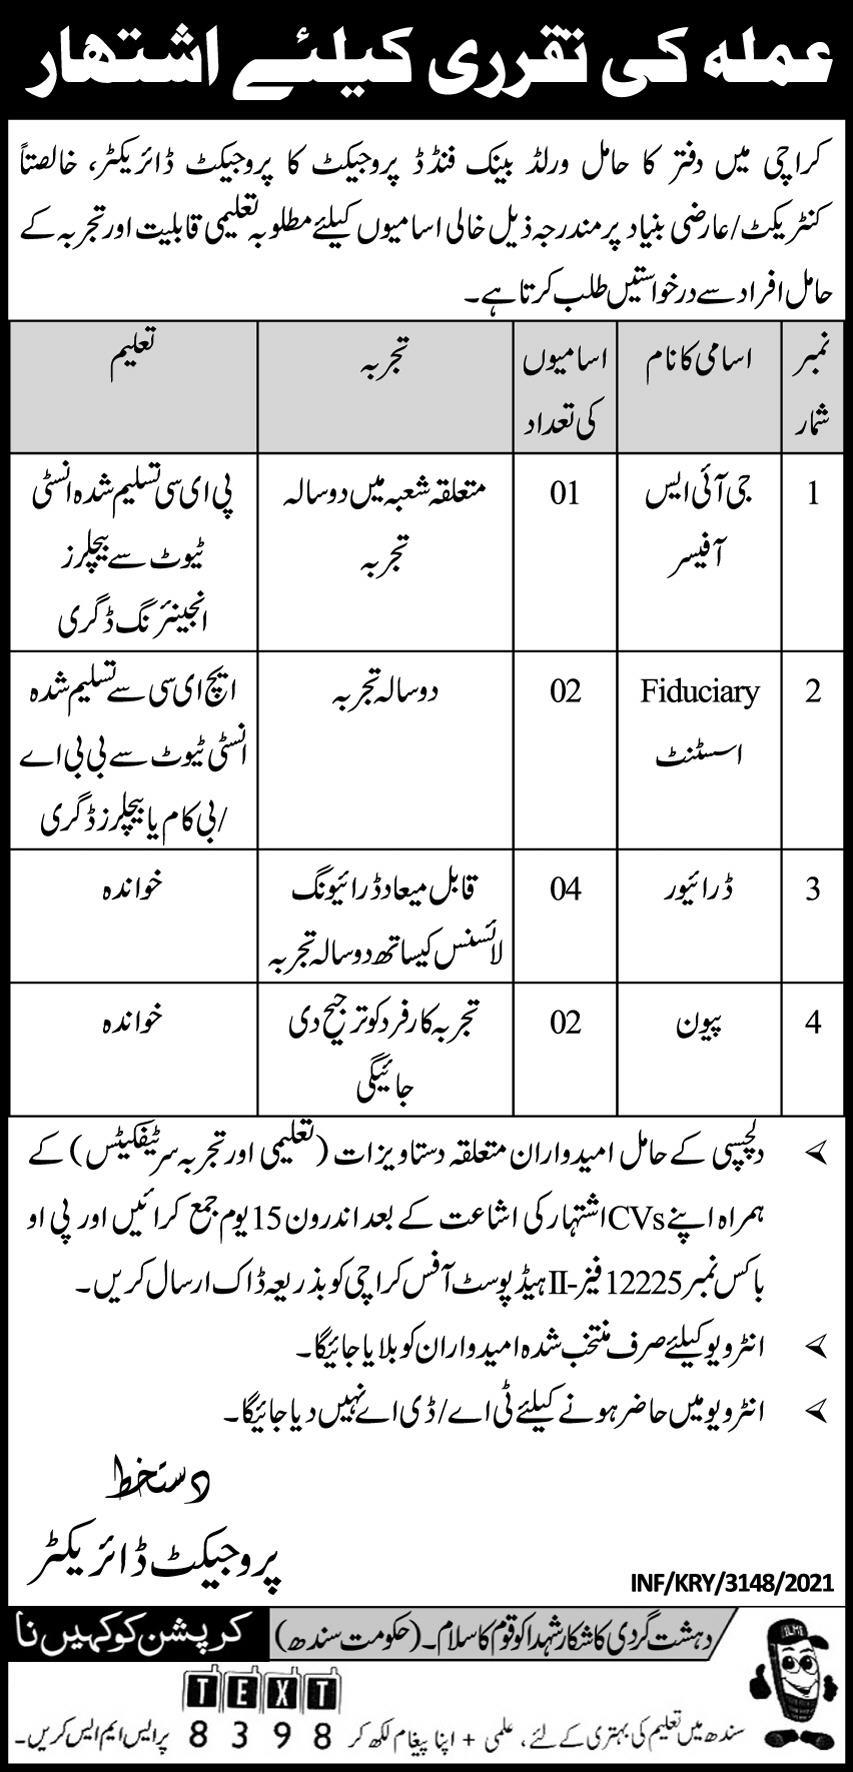 Public Sector Organization Jobs 2021 for Fiduciary Assistant, GIS Officer, Driver, LTV Driver, HTV Driver and Peon